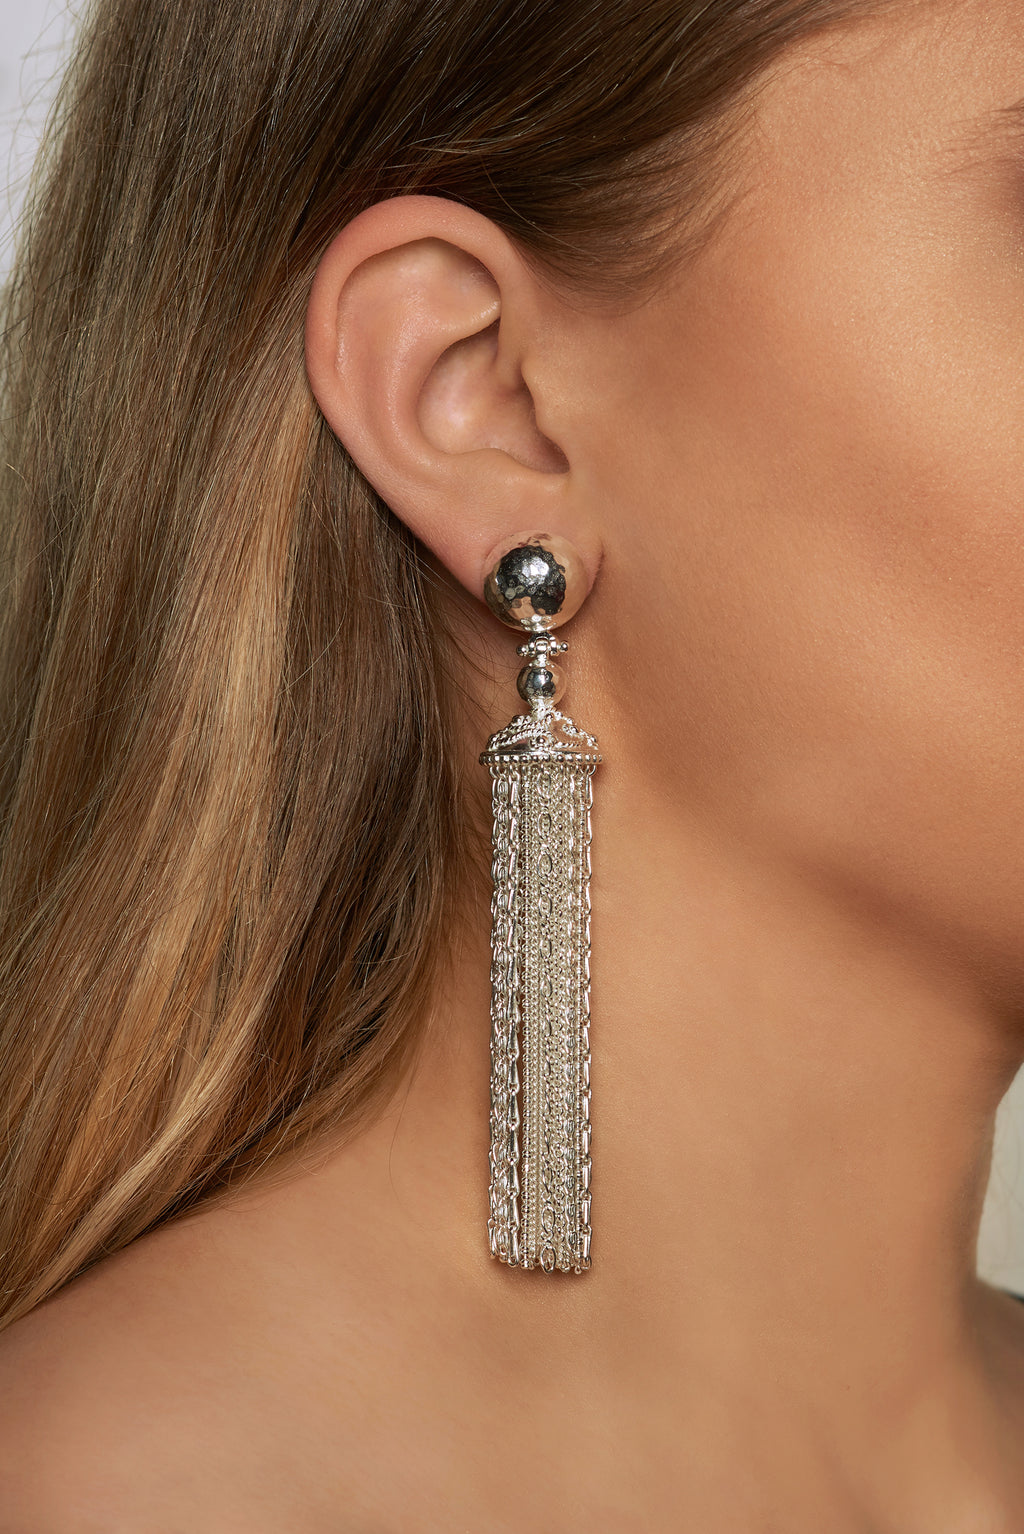 Battina Earrings - Silver - Angelina Alvarez